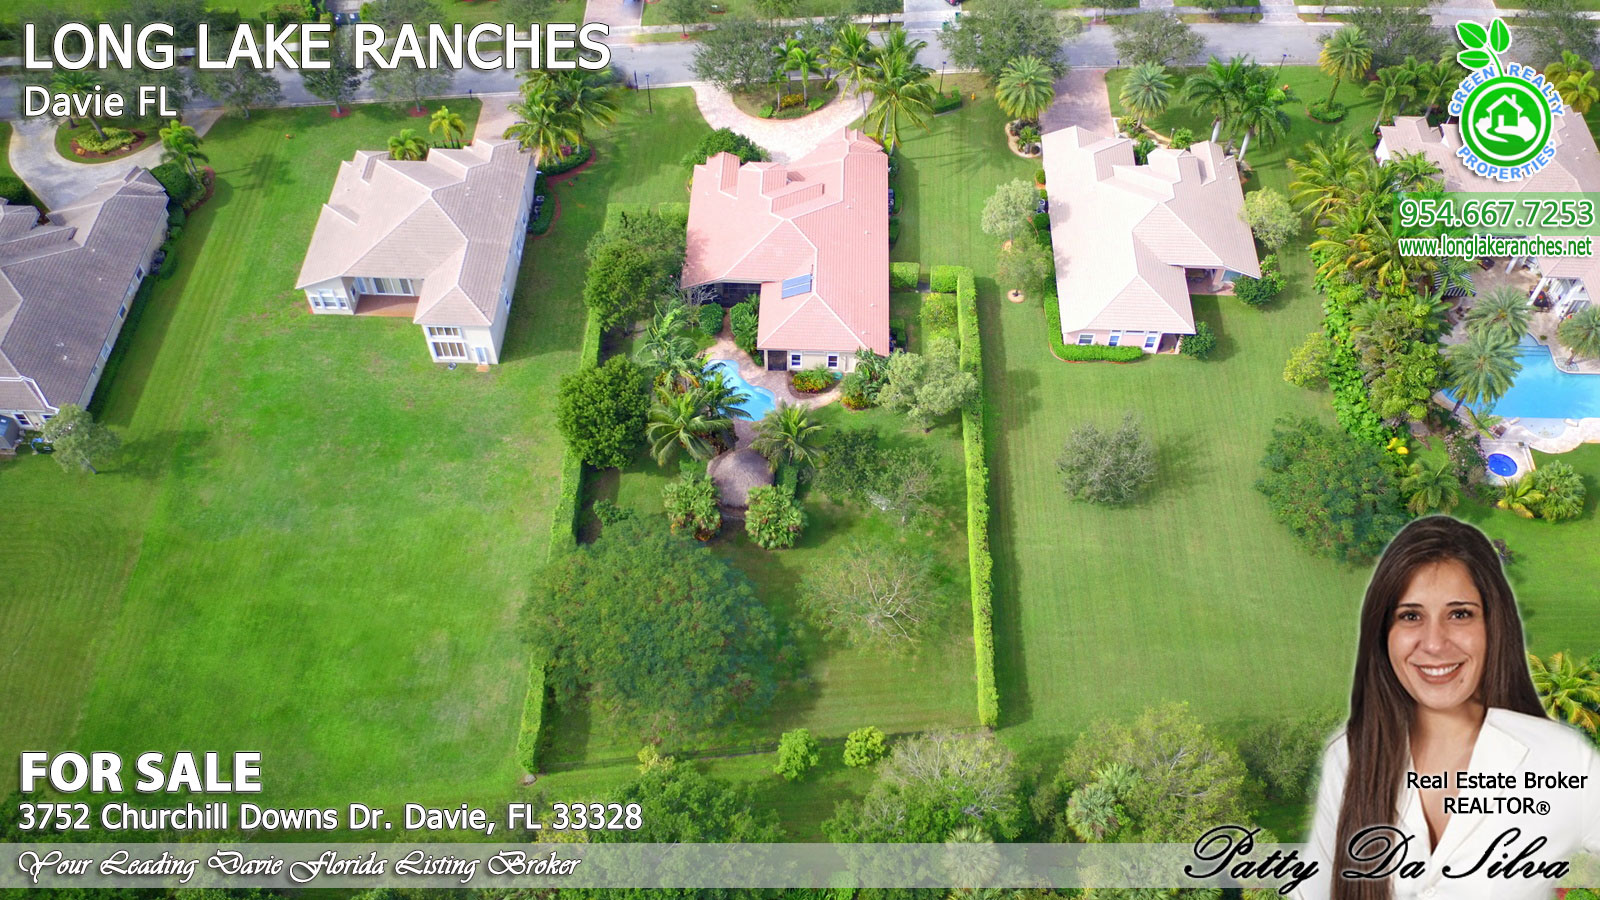 sell-long-lake-ranches-home-fast-with-patty-da-silva